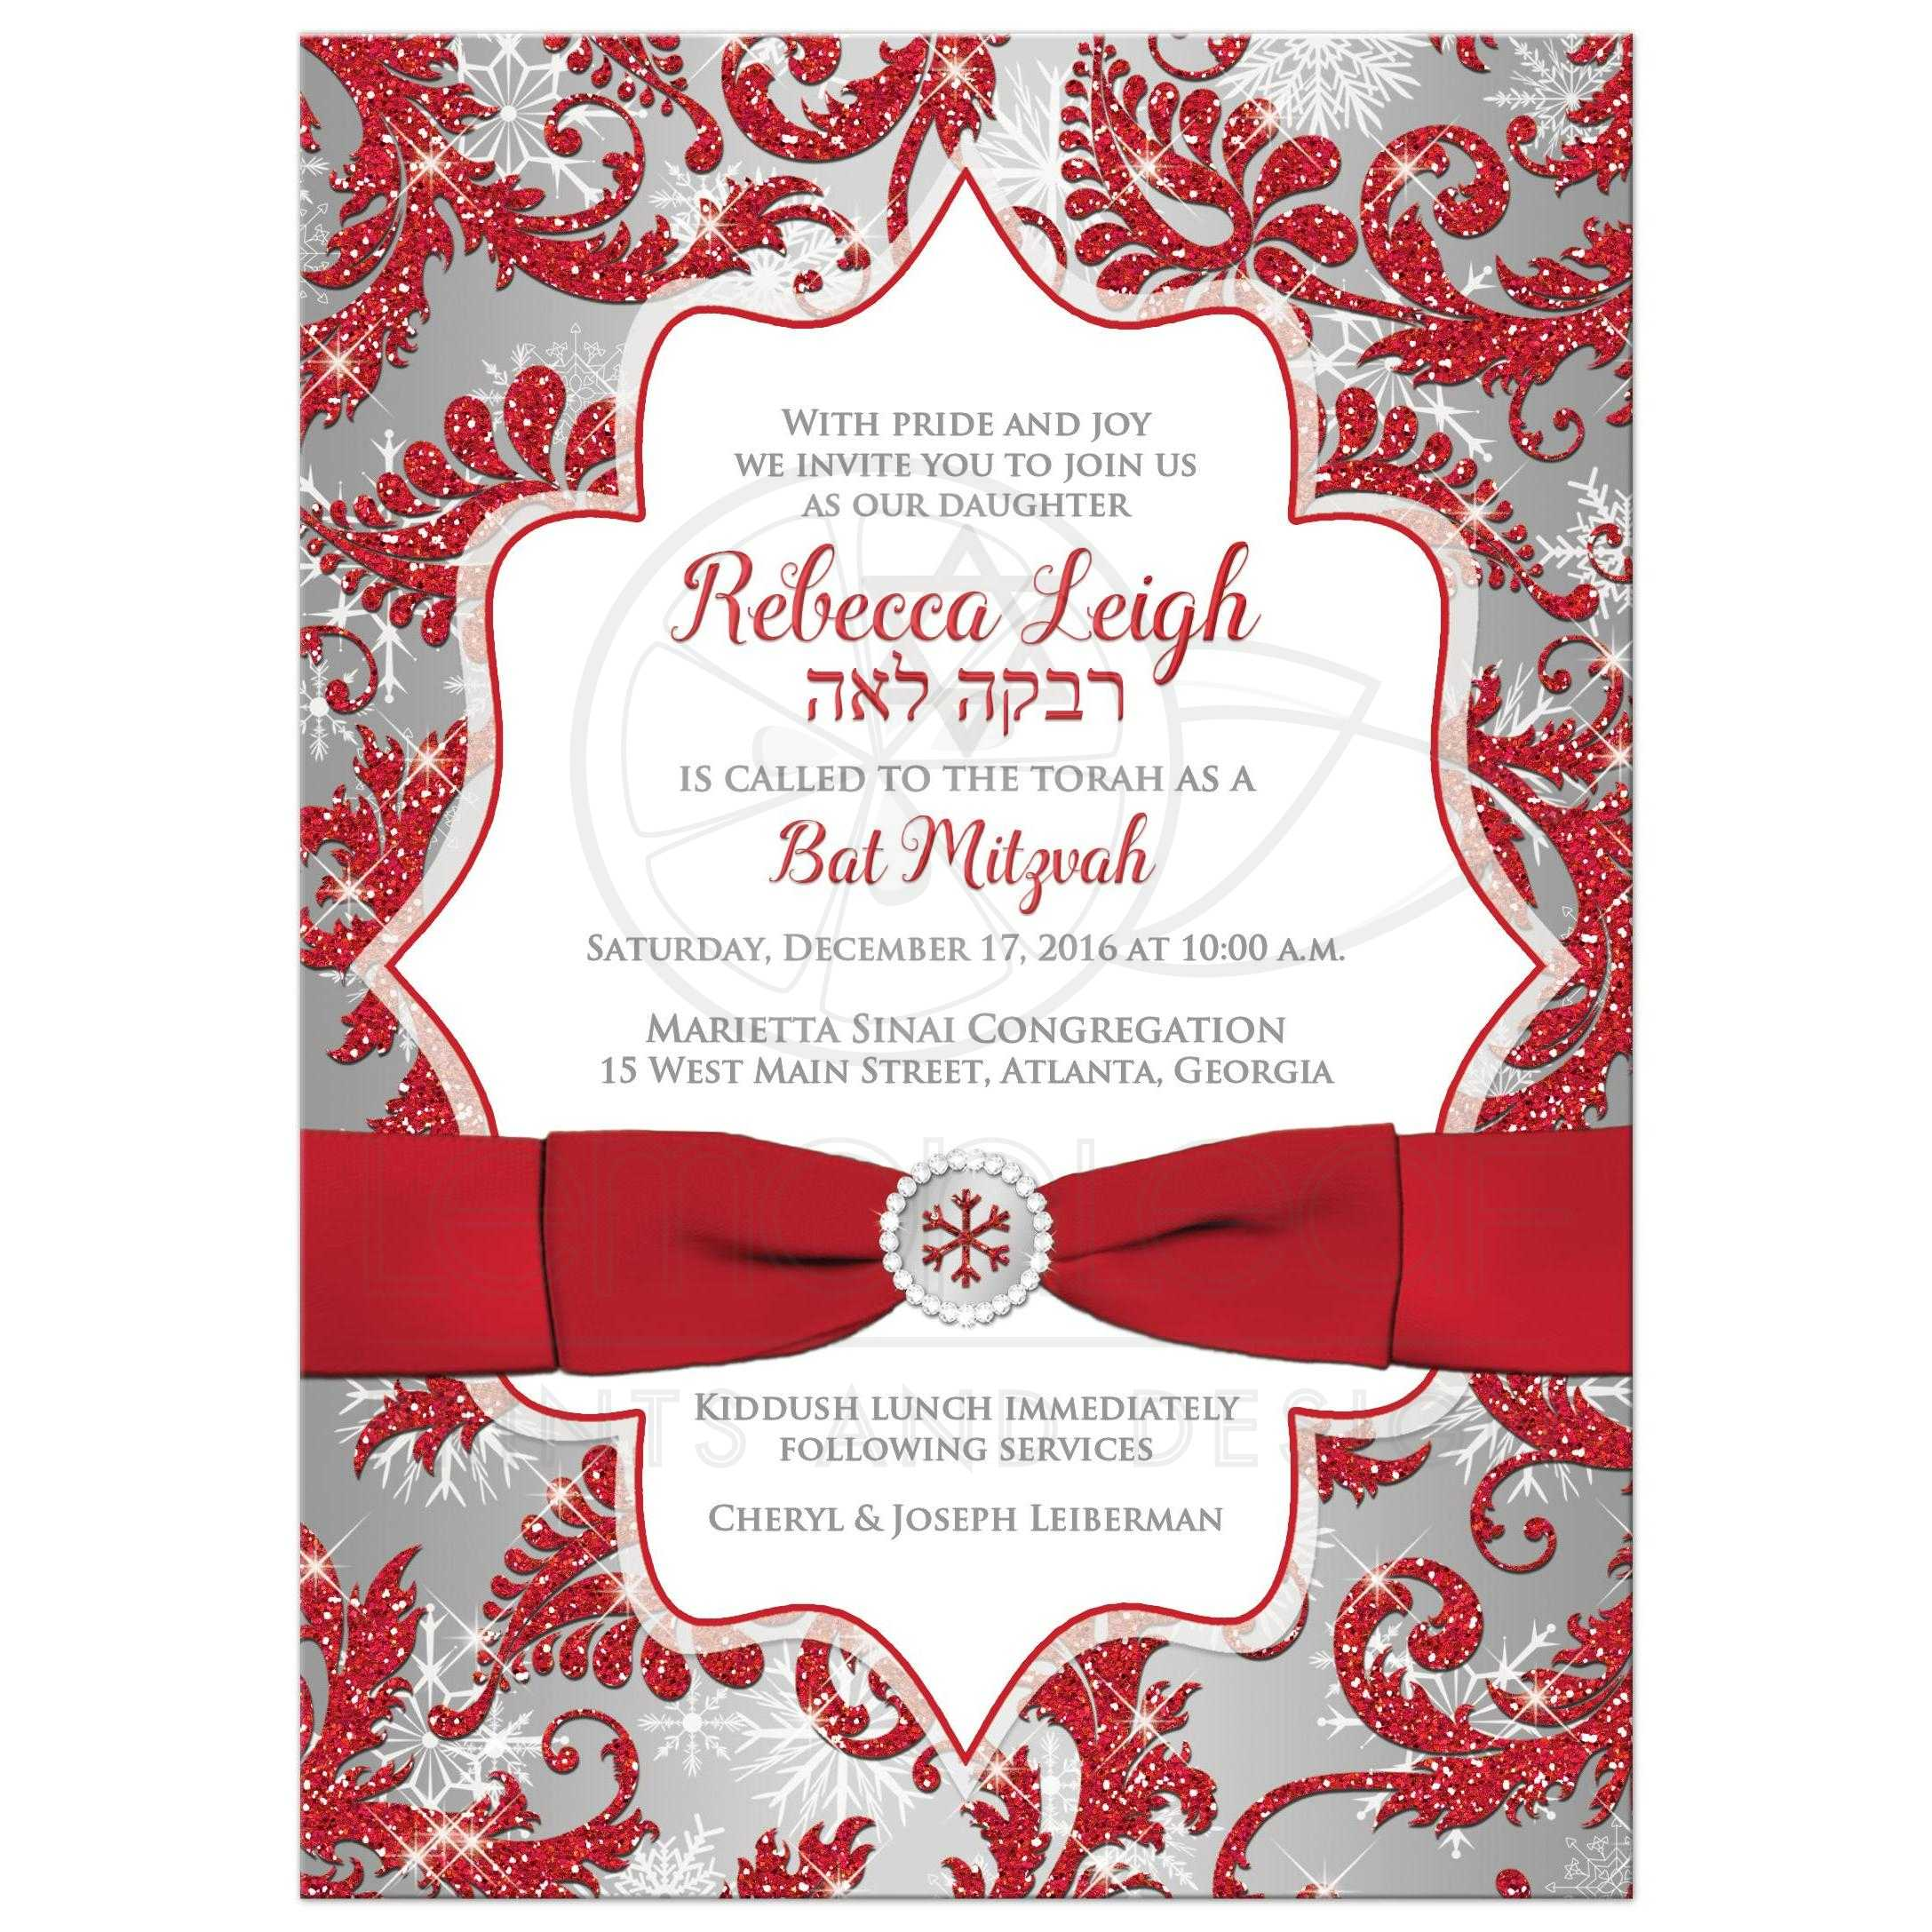 Beautiful Wedding Saying For Invitations Gallery - Invitations and ...